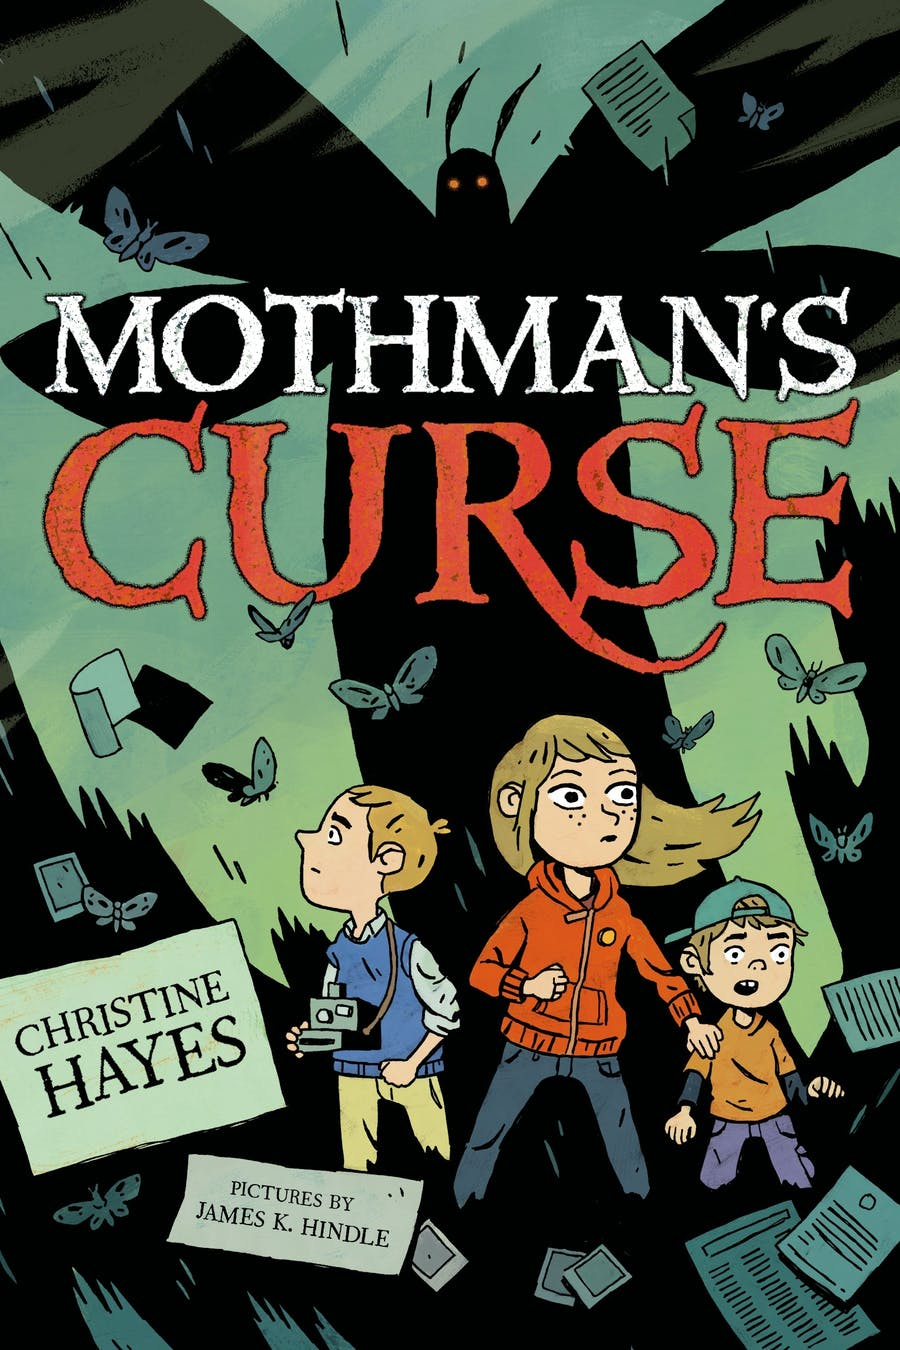 Mothman's Curse by Christine Hayes; illustrated by James K. Hindle